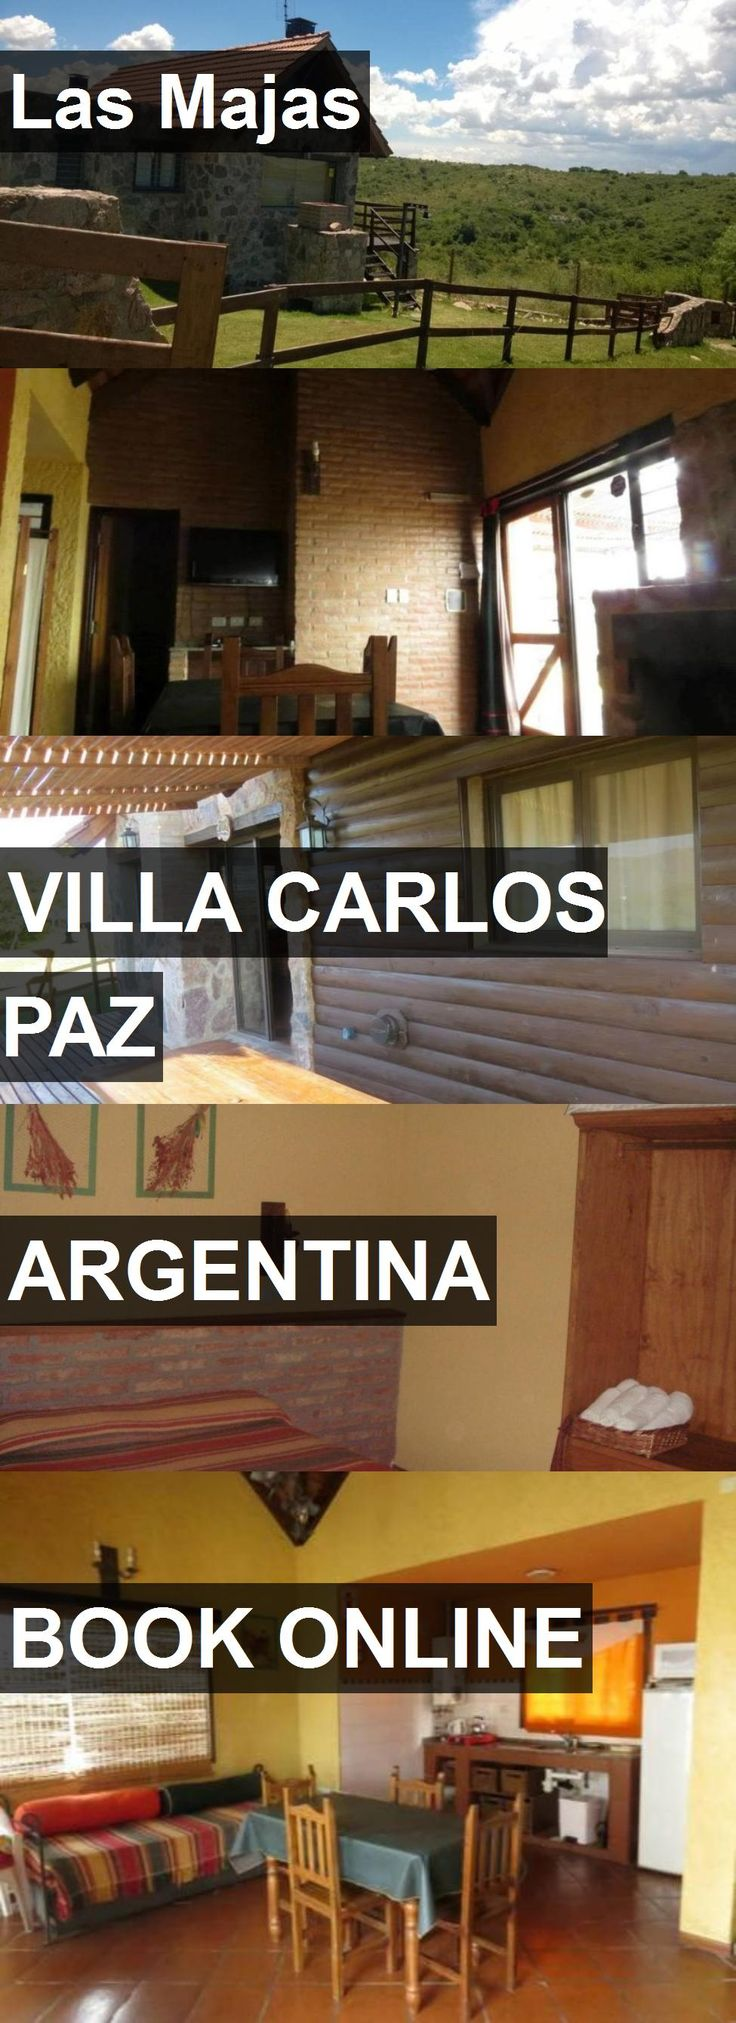 Hotel Las Majas in Villa Carlos Paz, Argentina. For more information, photos, reviews and best prices please follow the link. #Argentina #VillaCarlosPaz #travel #vacation #hotel